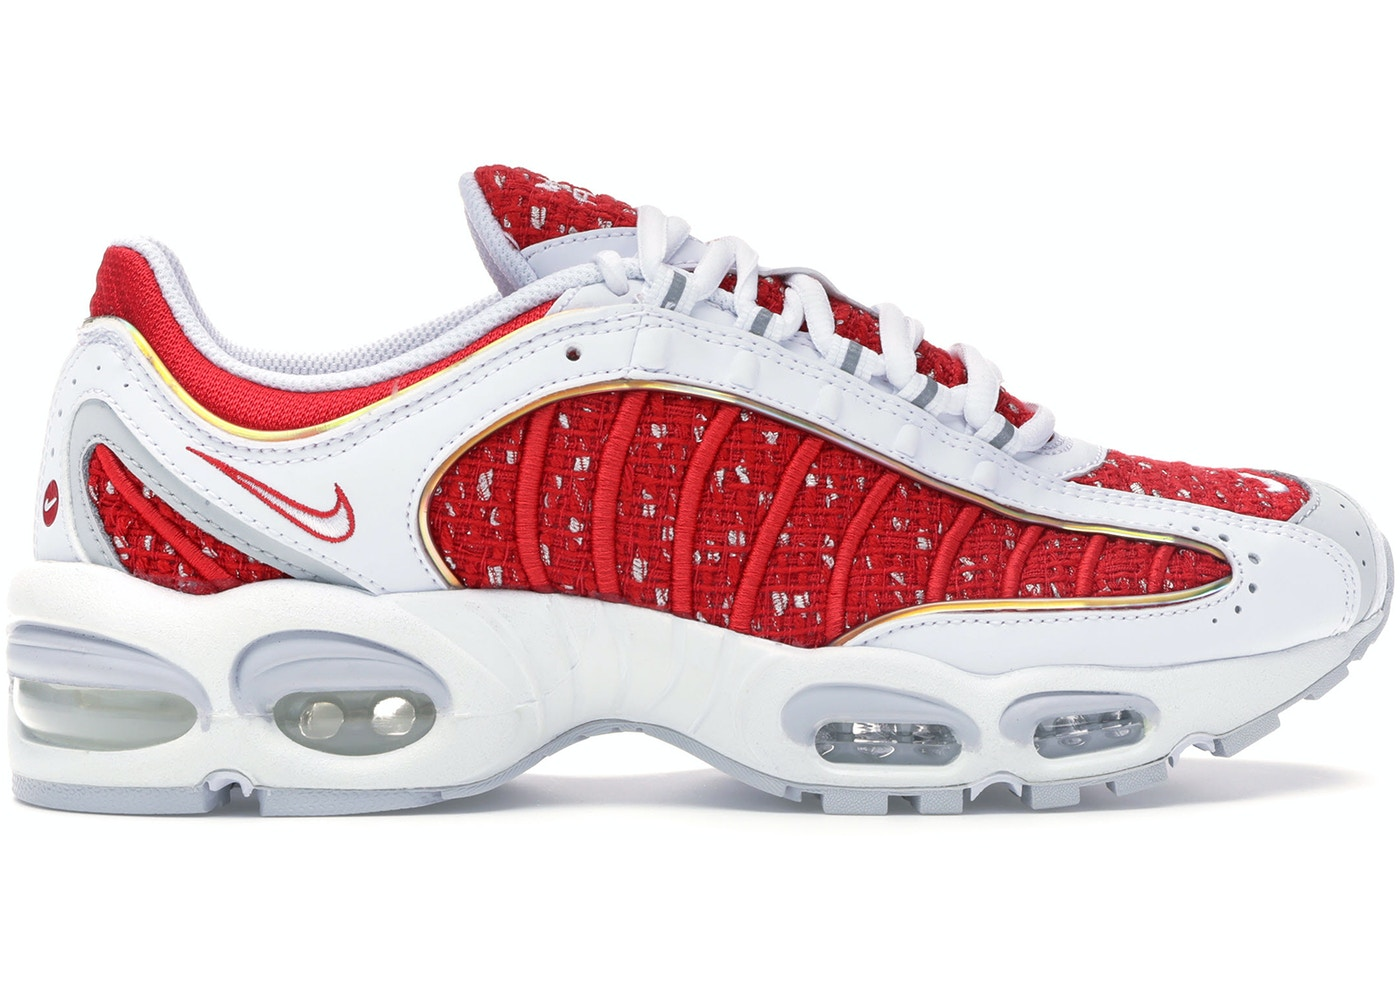 énorme réduction 92fa5 59881 Air Max Tailwind 4 Supreme White